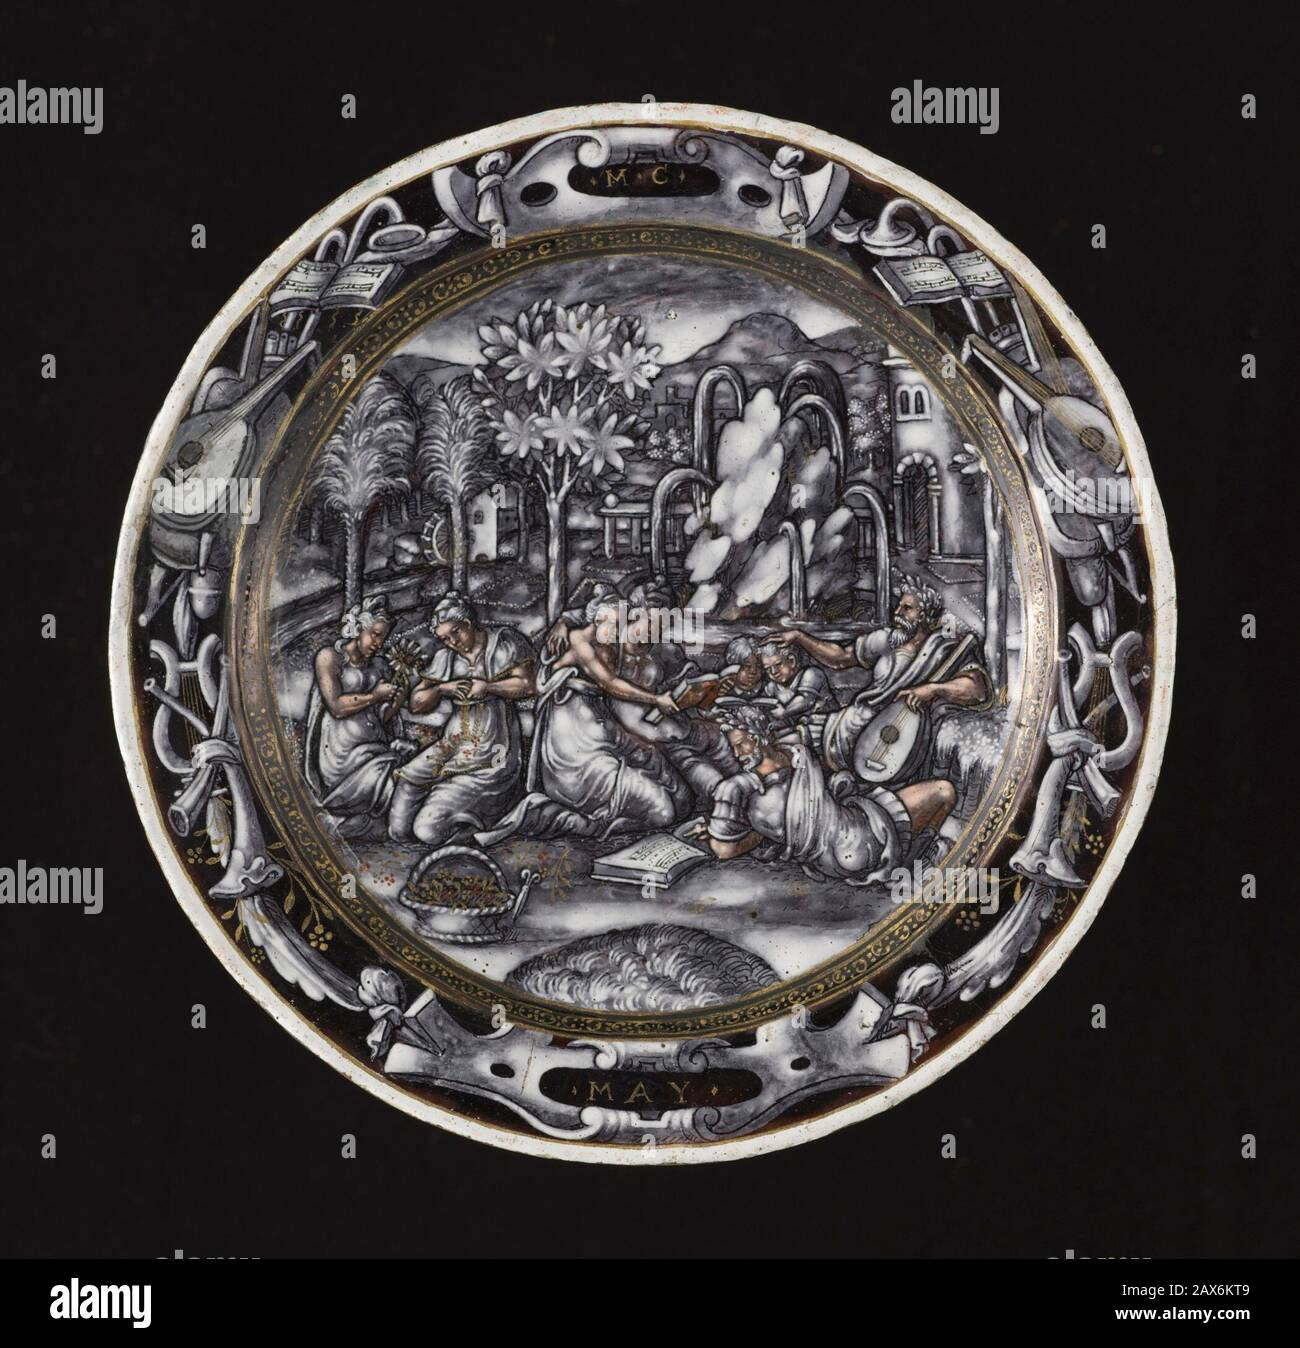 Page 2 Enamel Copper Plate High Resolution Stock Photography And Images Alamy